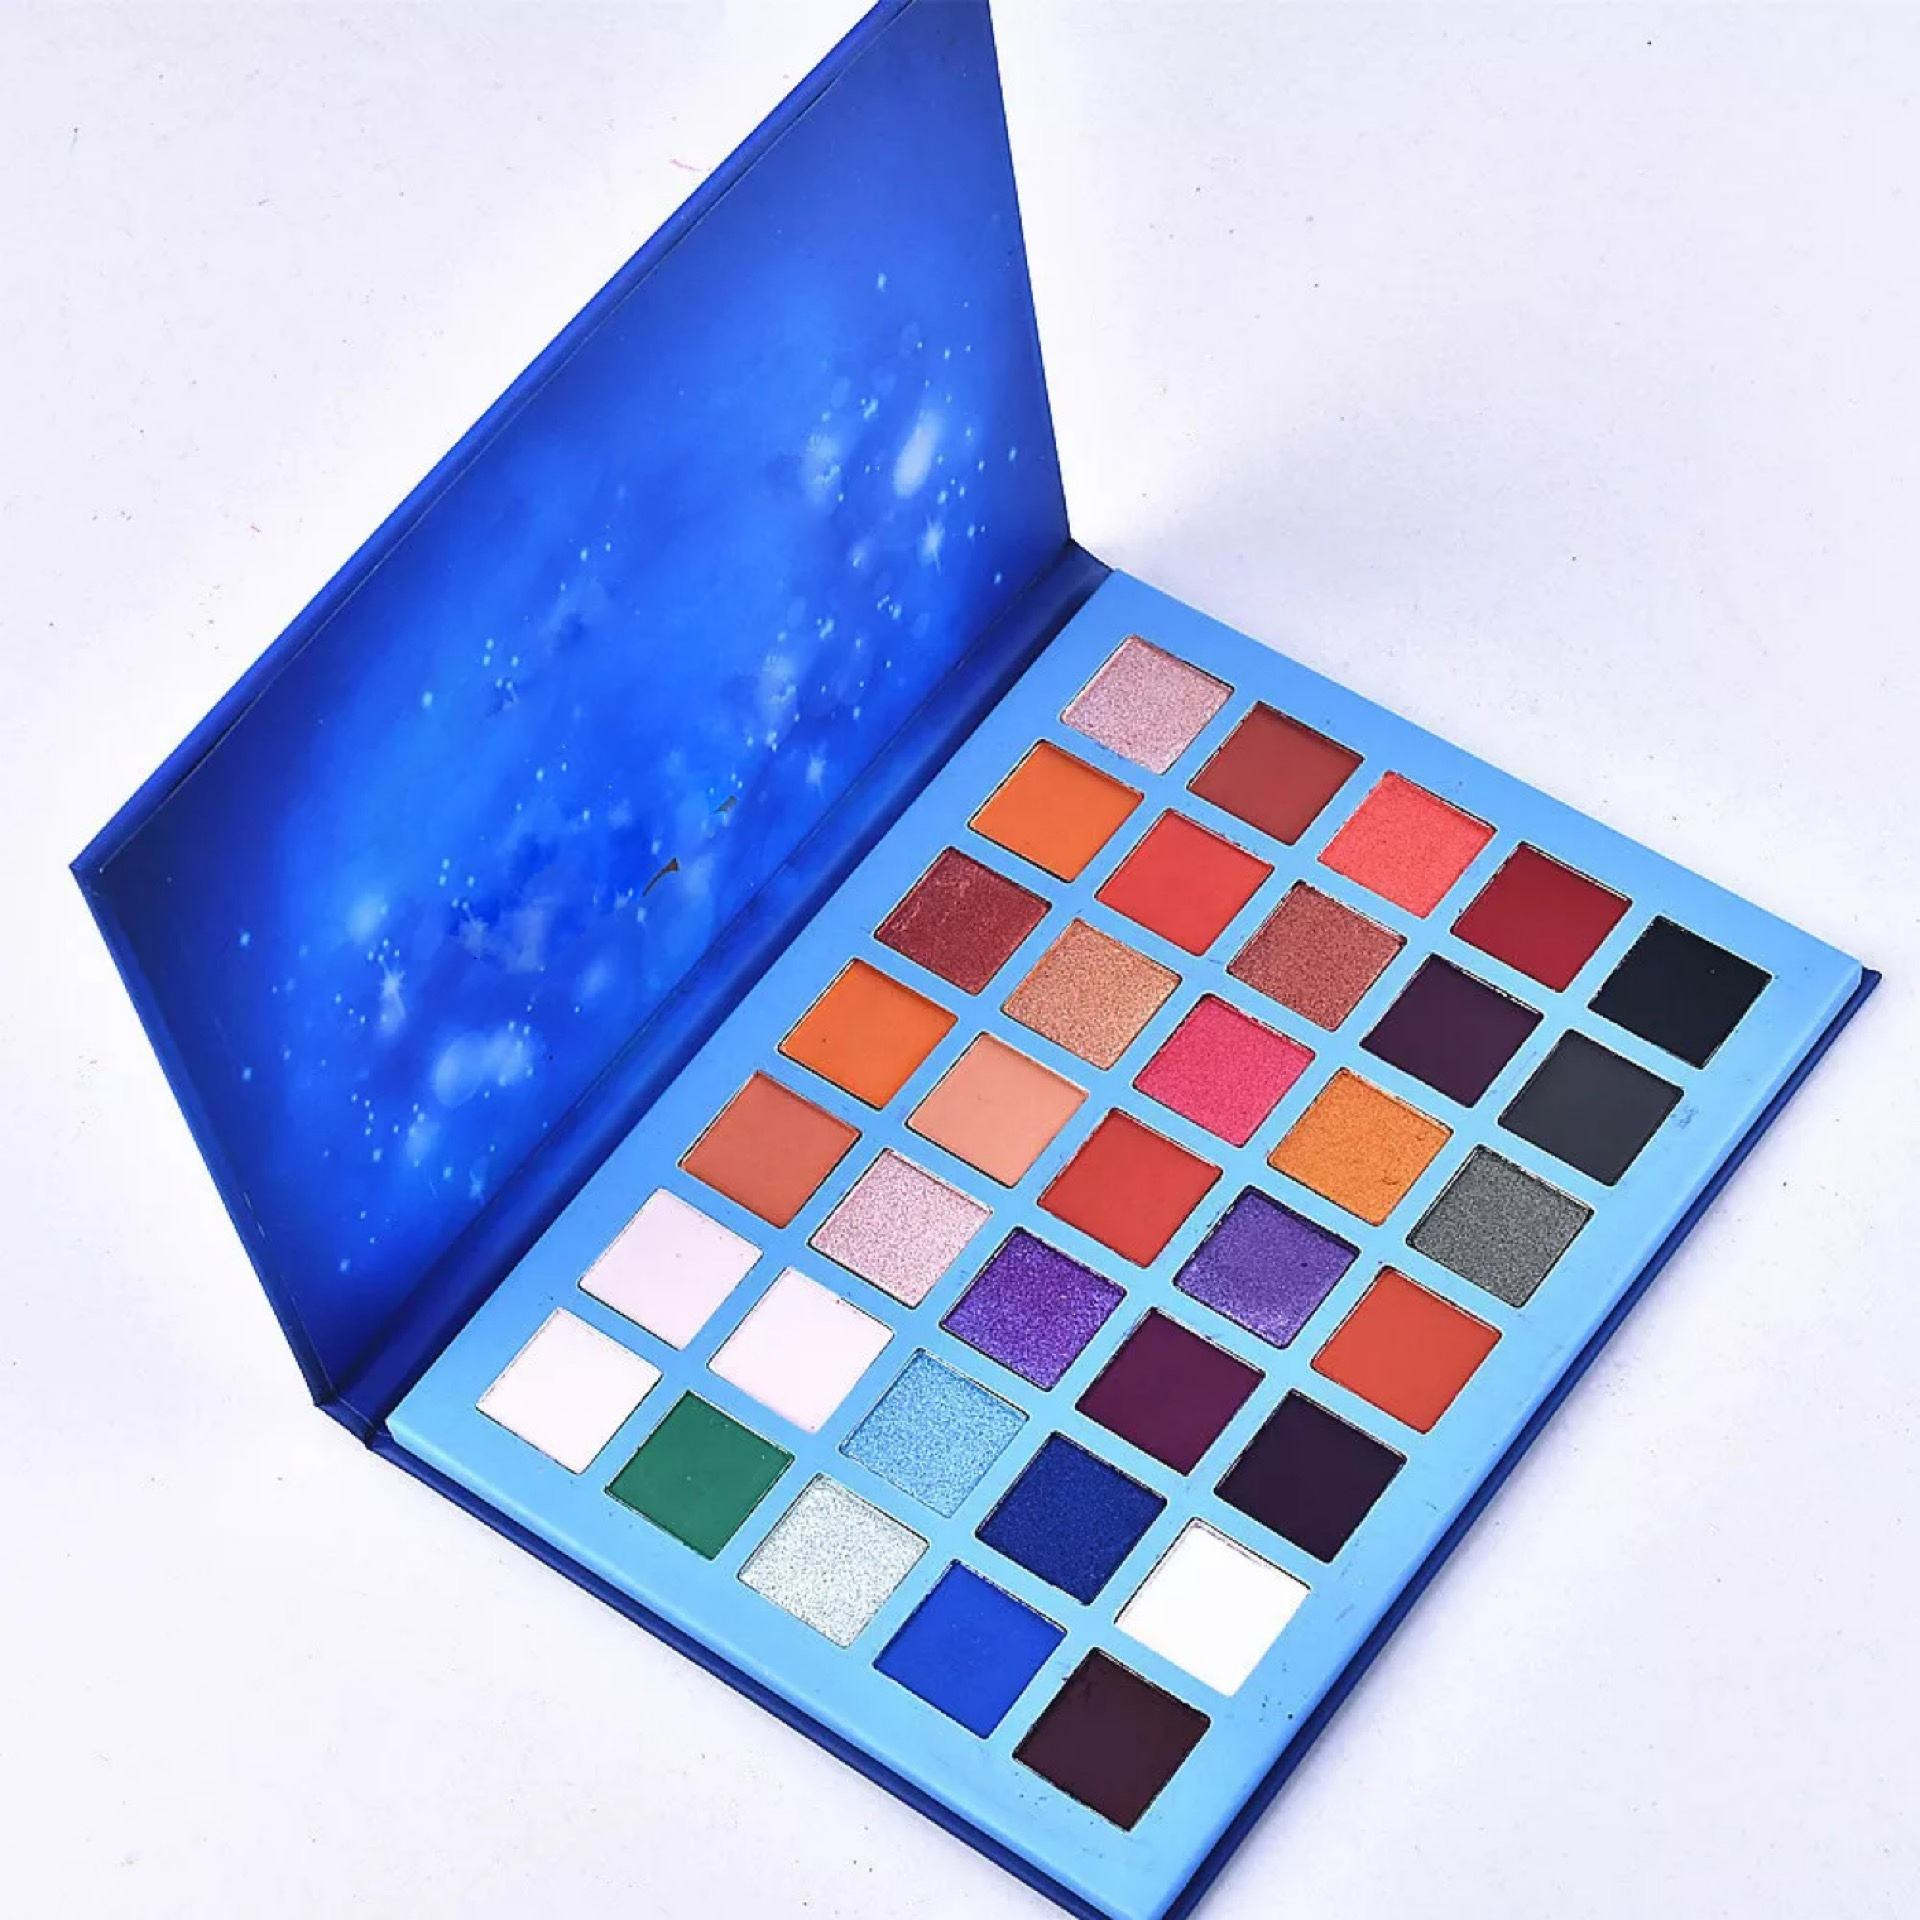 SHINY Natural Fusion Eyeshadow Palette 35 Color Eyeshadow palette